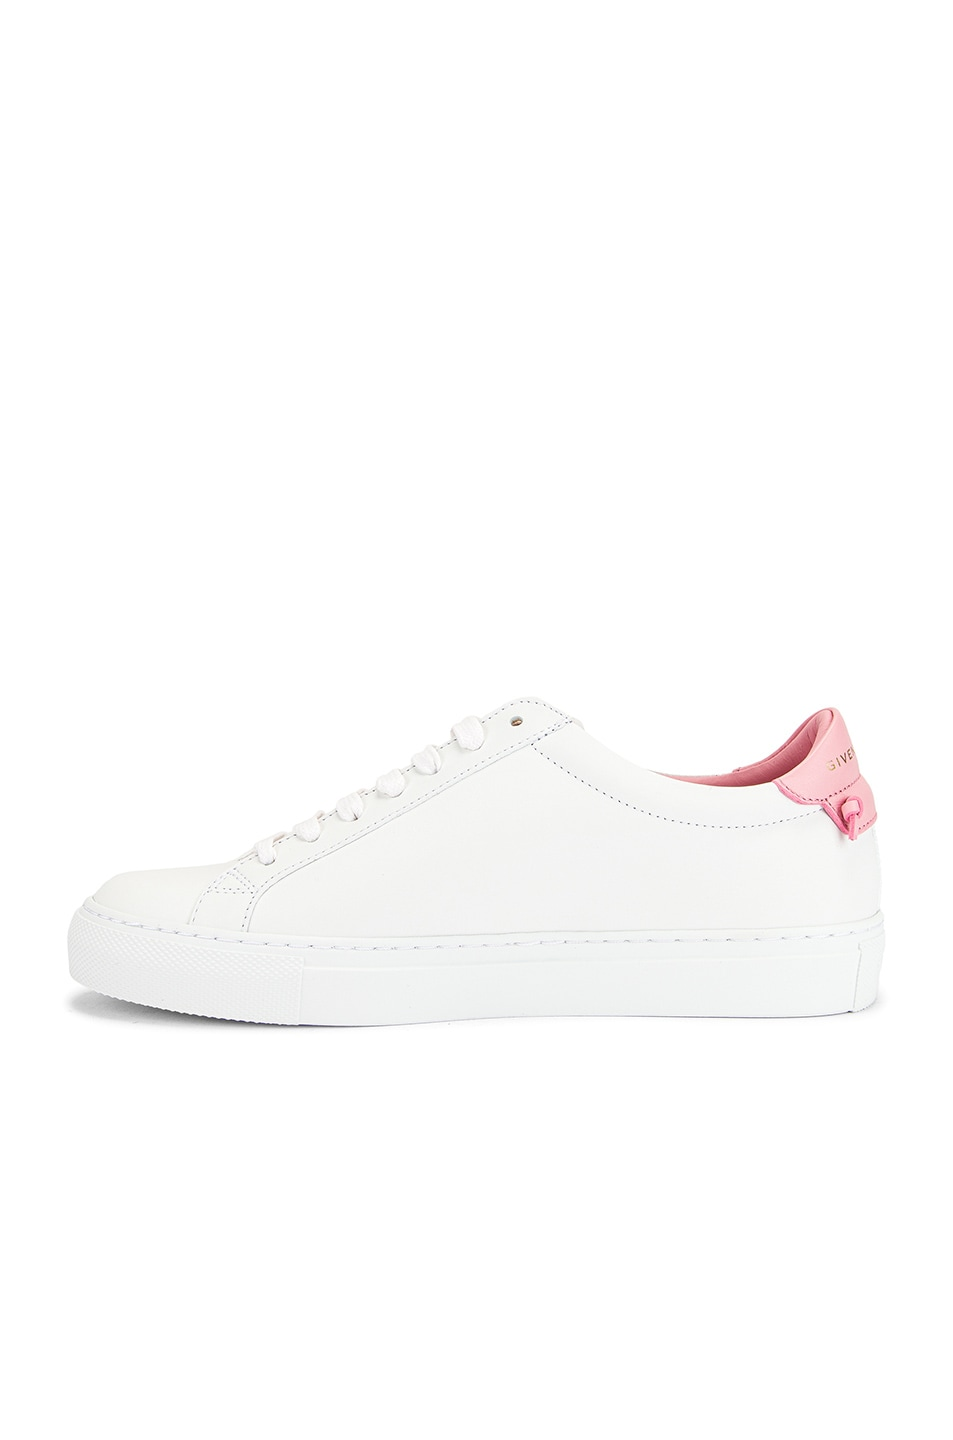 Image 5 of Givenchy Urban Street Low Sneaker in Bubble Gum